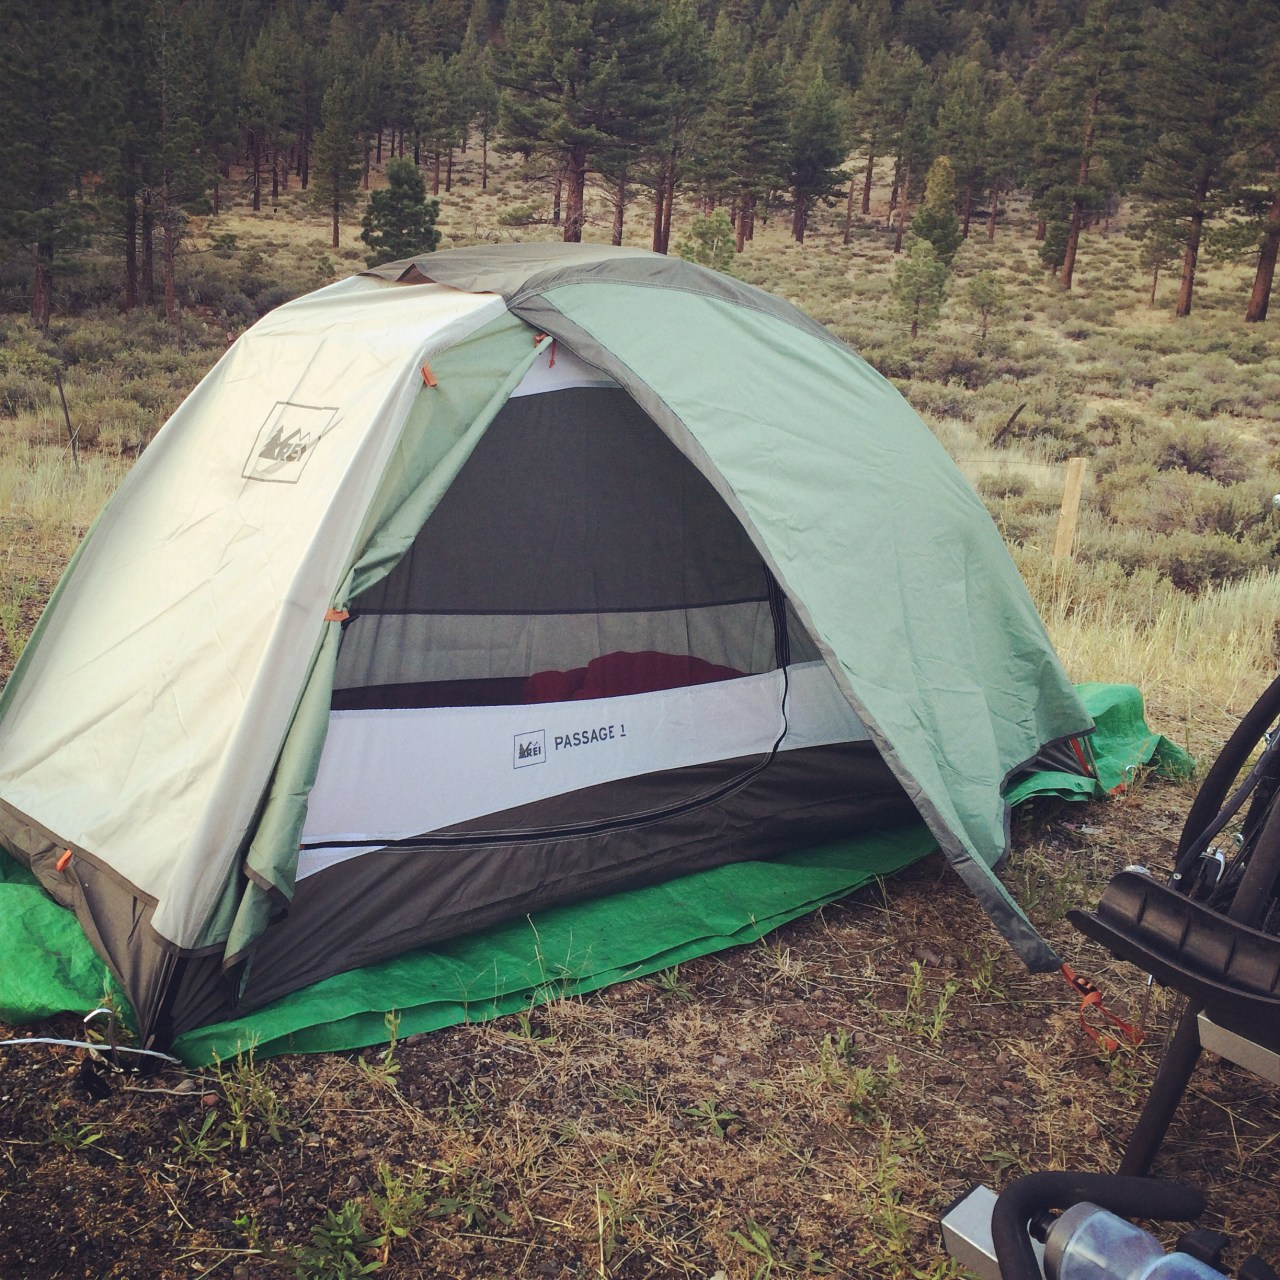 New tent! It's awesome.